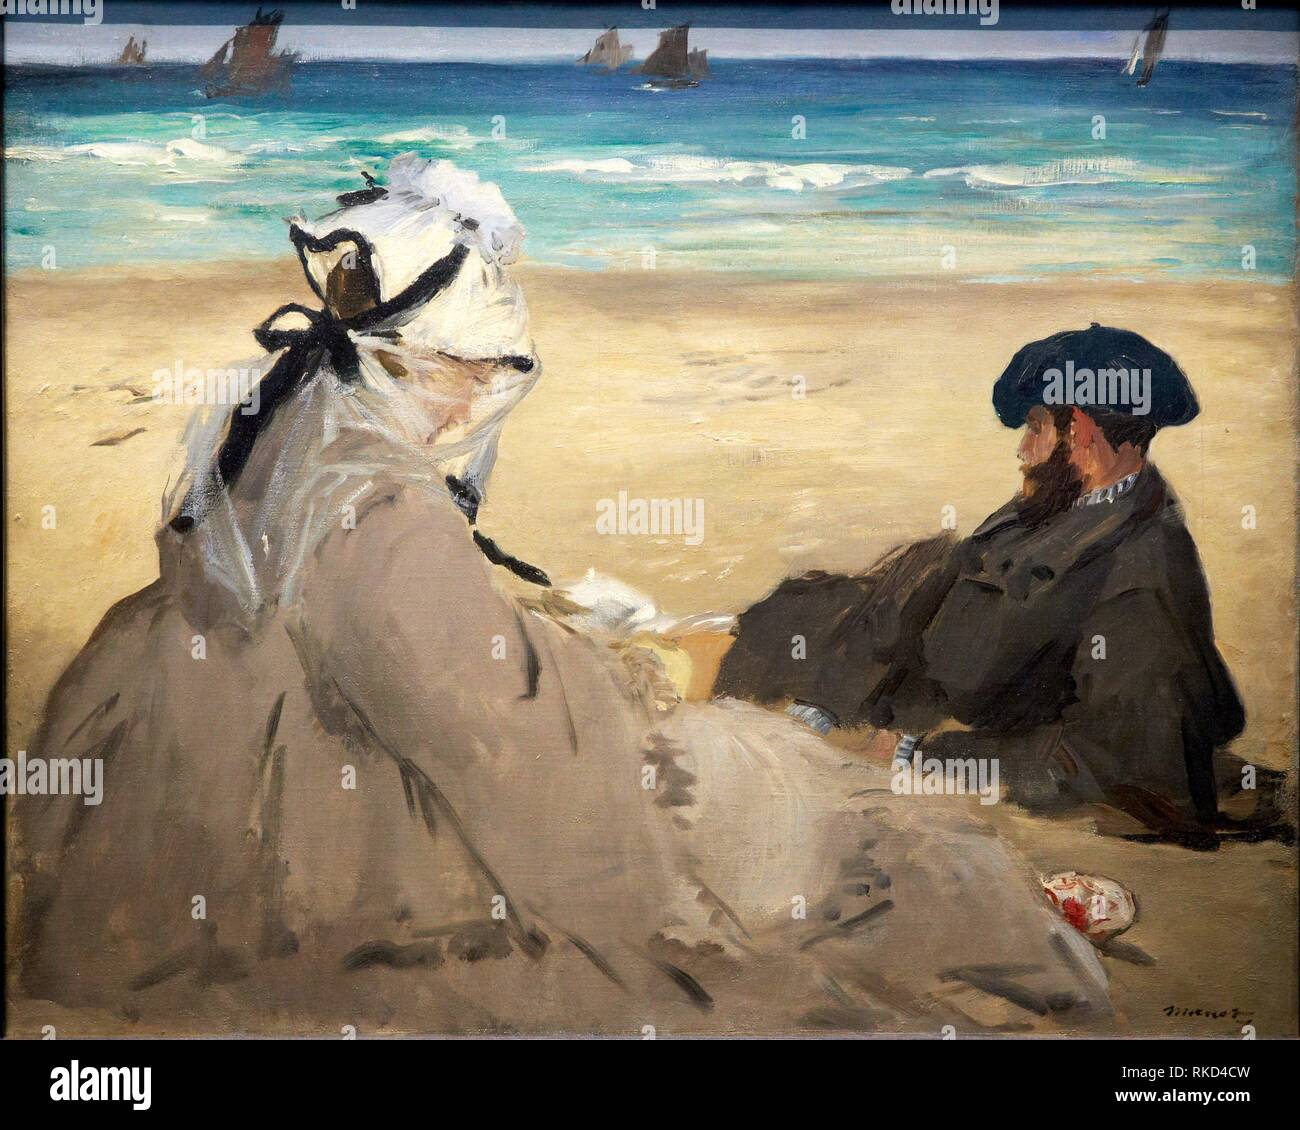 '''On the Beach'', 1873, by Edouard Manet (1832-1883), oil on canvas, 60x73 cm. Musée d'Orsay. Orsay Museum. Paris. France. - Stock Image